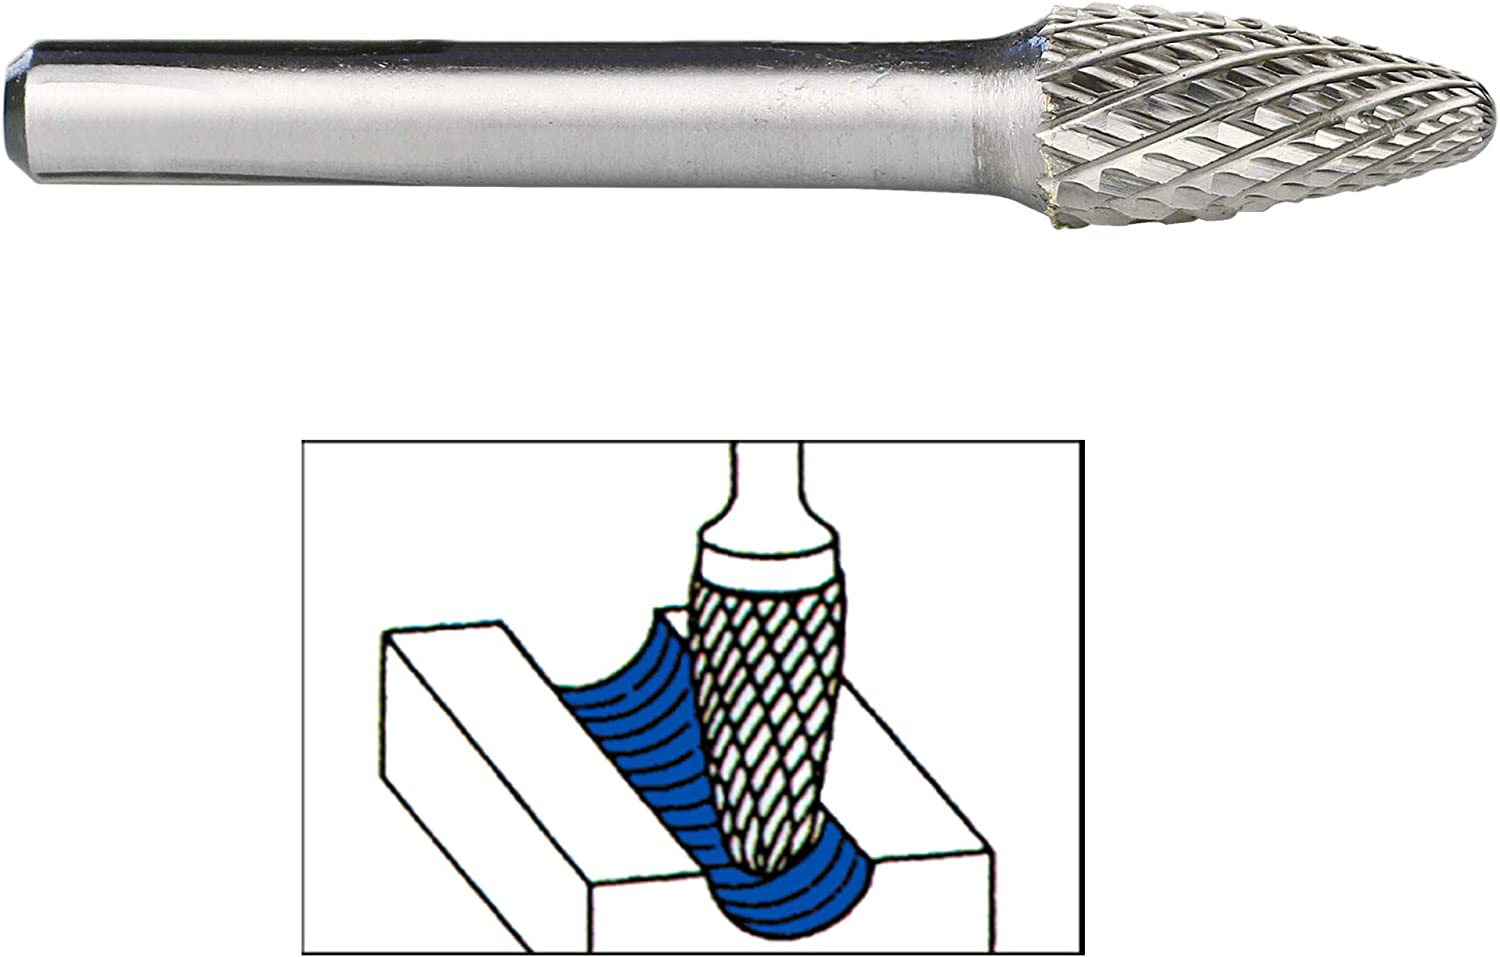 """Cylindrical with 1//4/"""" Shank Metal Carving Drilling Polishing File for Die Grinder DLtools SA-3 Double Cut Tungsten Carbide Rotary Burr Bit"""